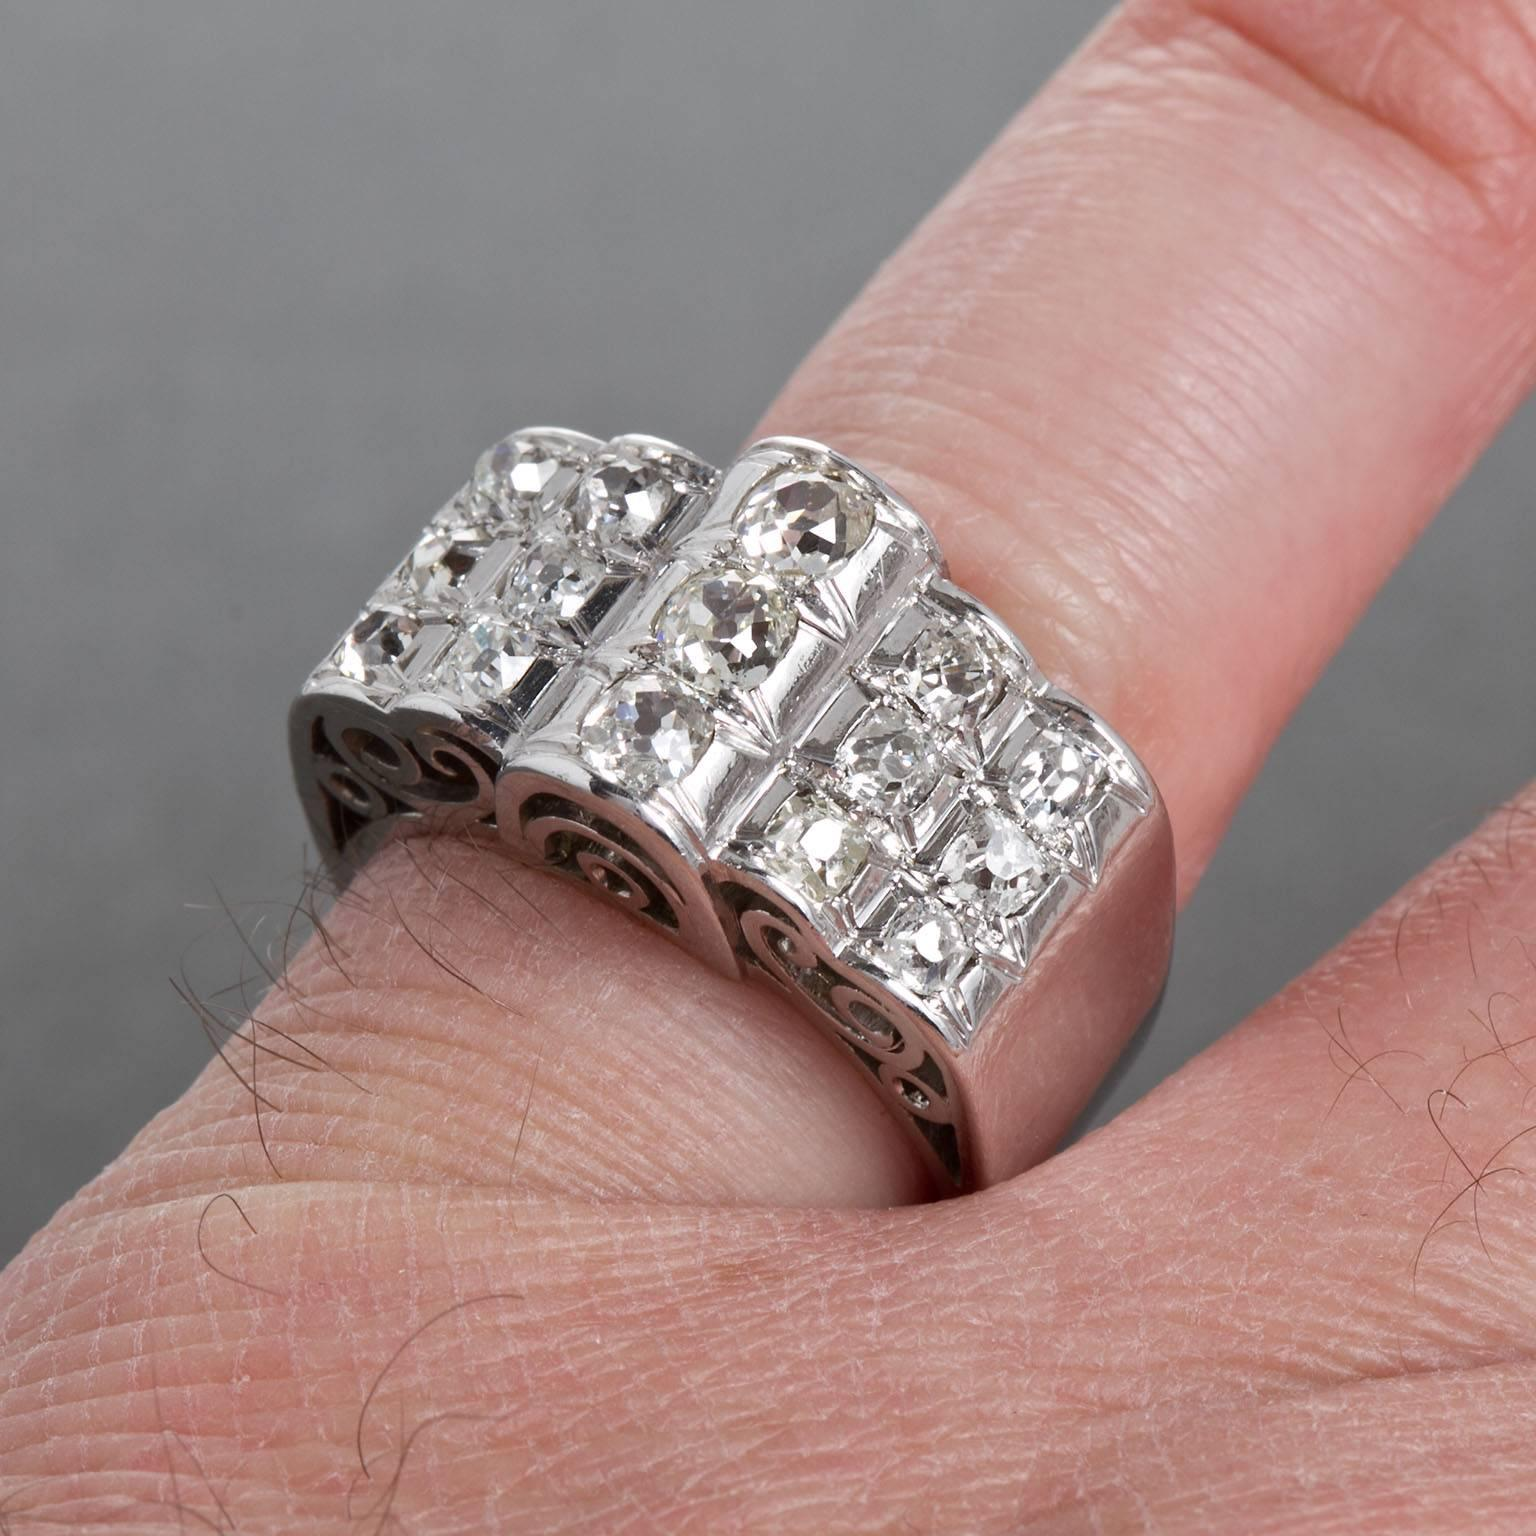 Diamond Gold Three Row Filigreed Motif Ring For Sale at 1stdibs